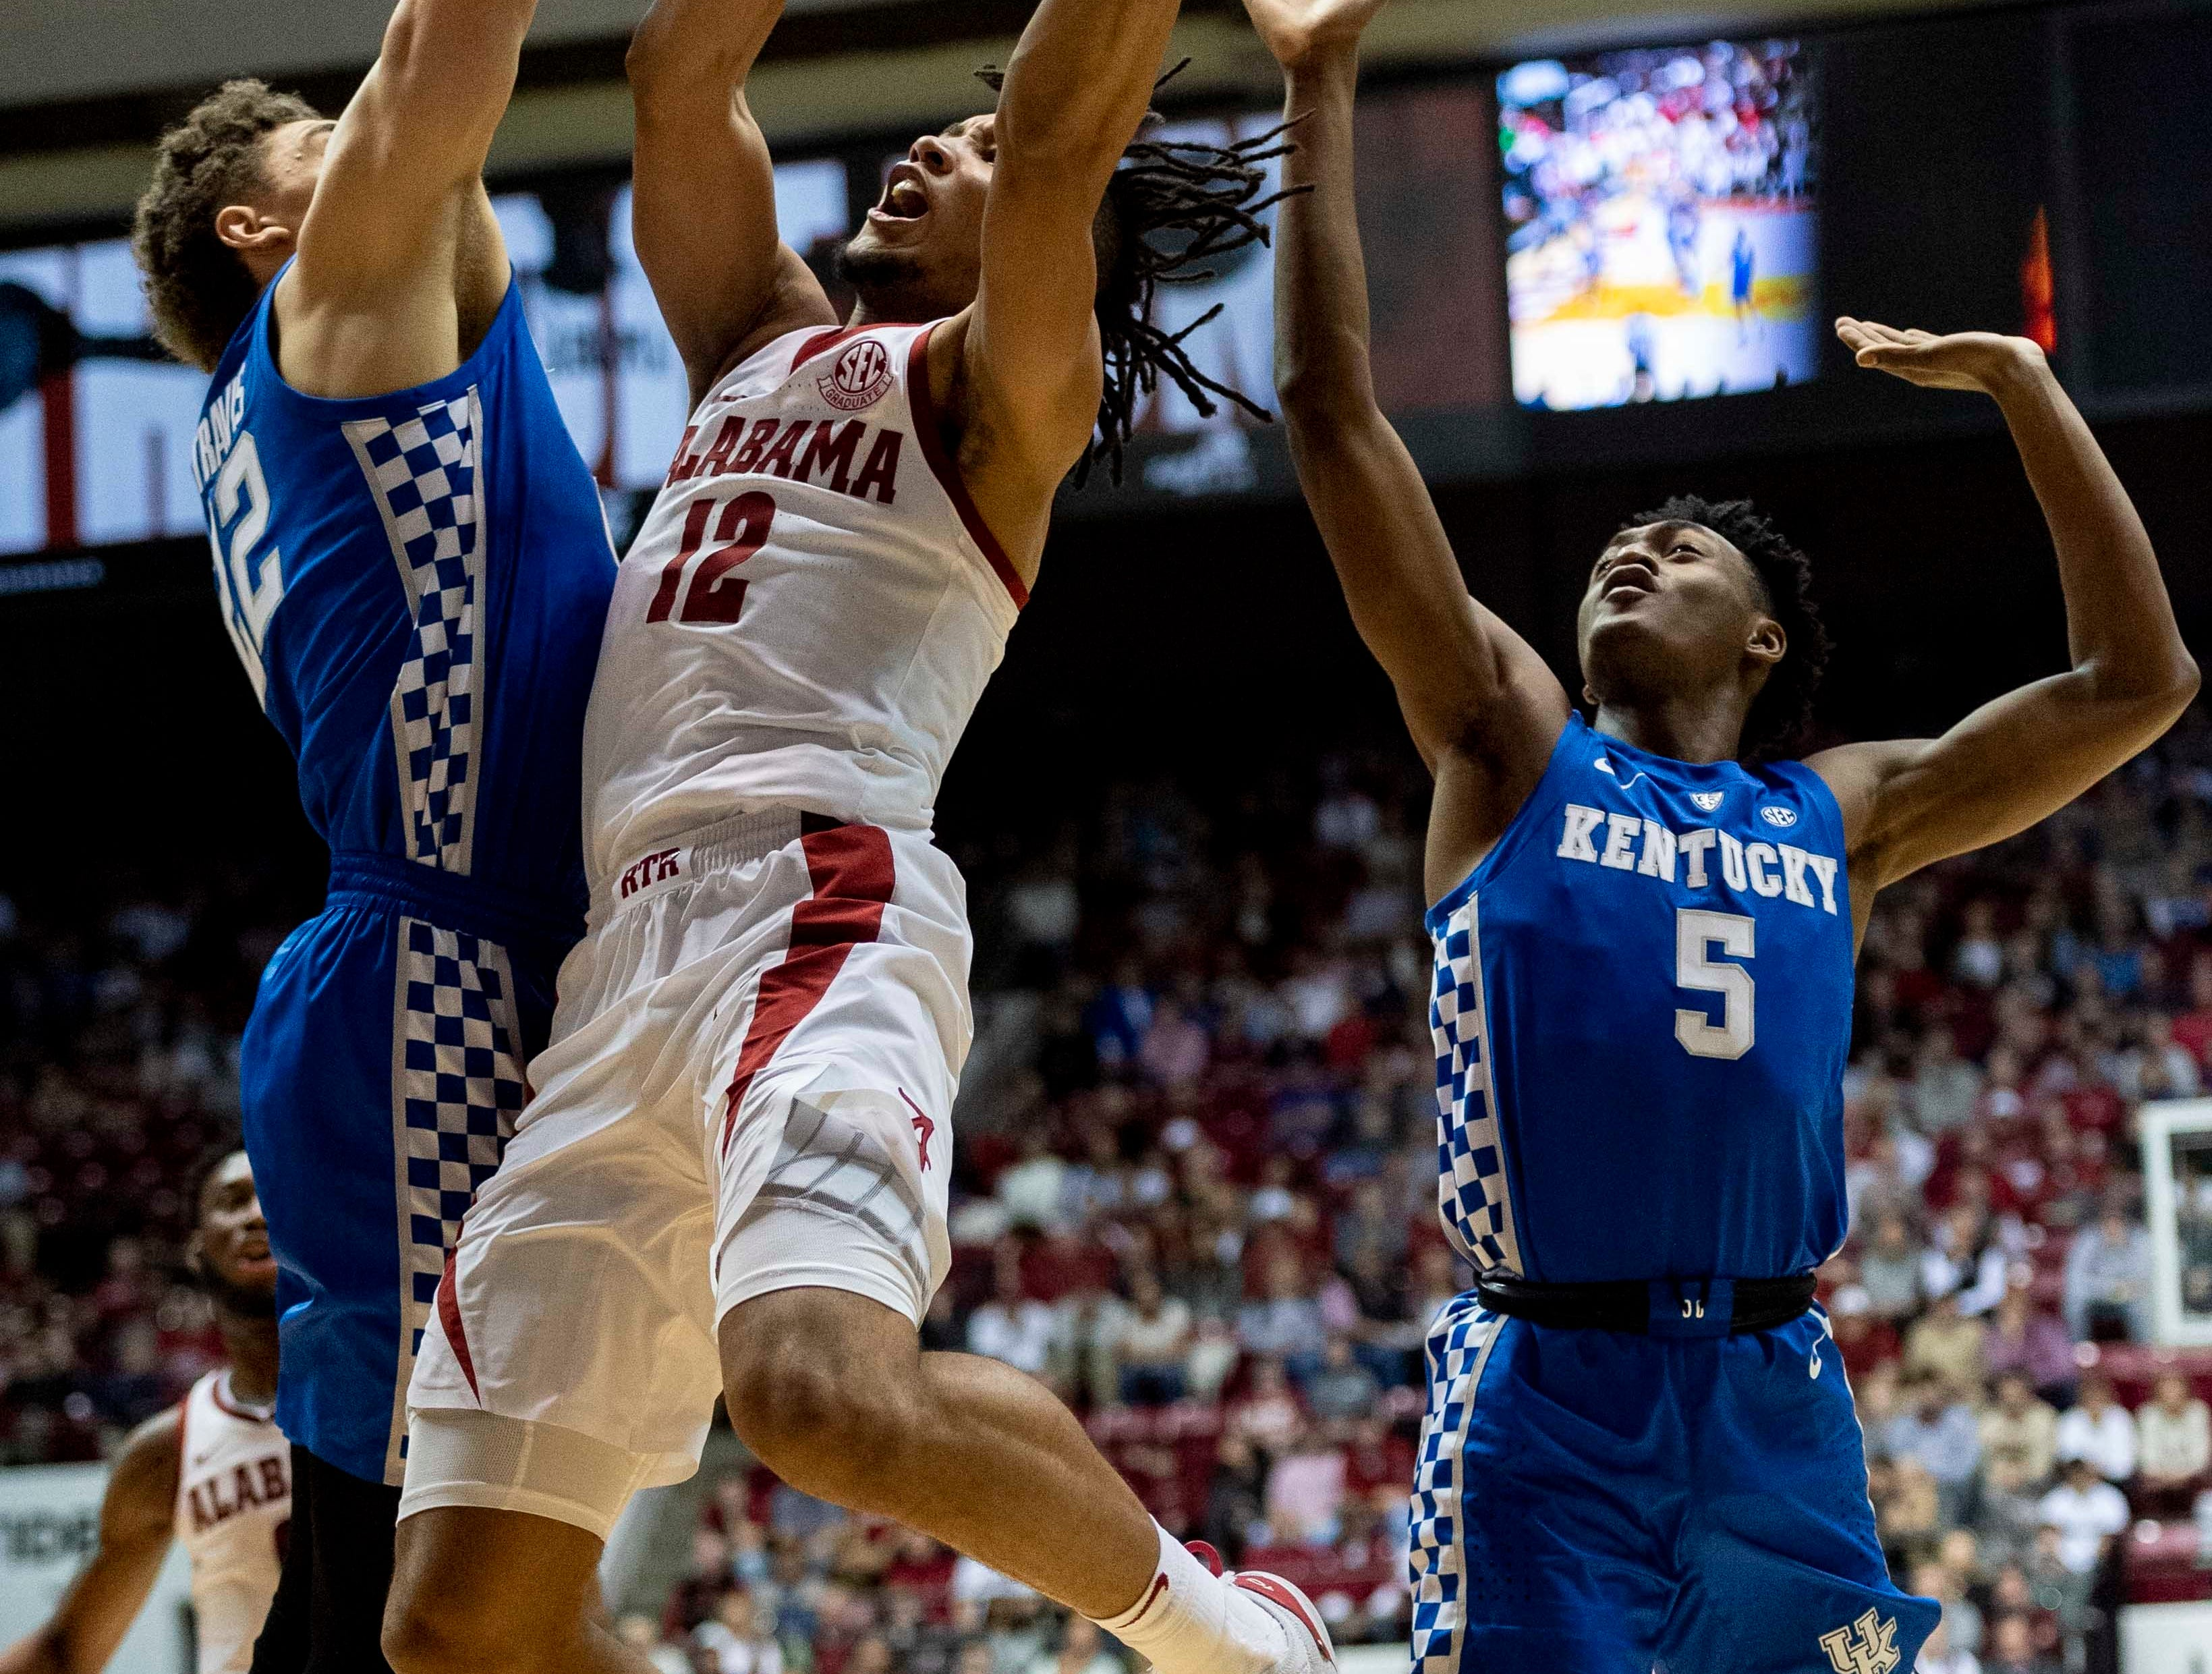 Alabama guard Dazon Ingram (12) gets a shot off between Kentucky forward Reid Travis (22) and guard Immanuel Quickley (5) during the second half of an NCAA college basketball game, Saturday, Jan. 5, 2019, in Tuscaloosa, Ala.